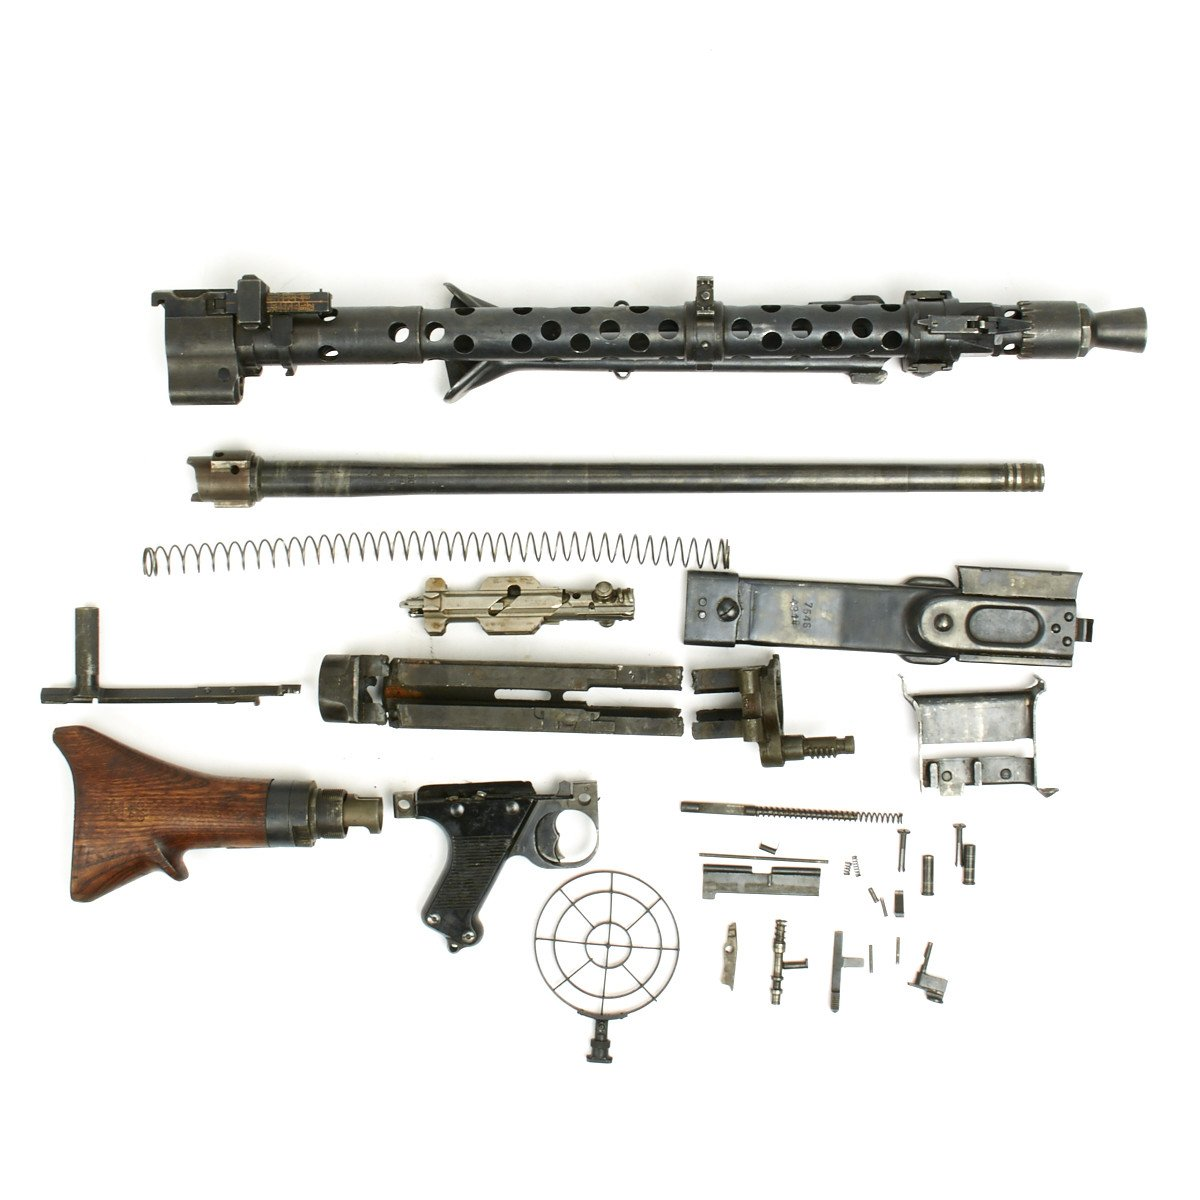 Original German WWII MG 34 Machine Gun Parts Set with Demilled